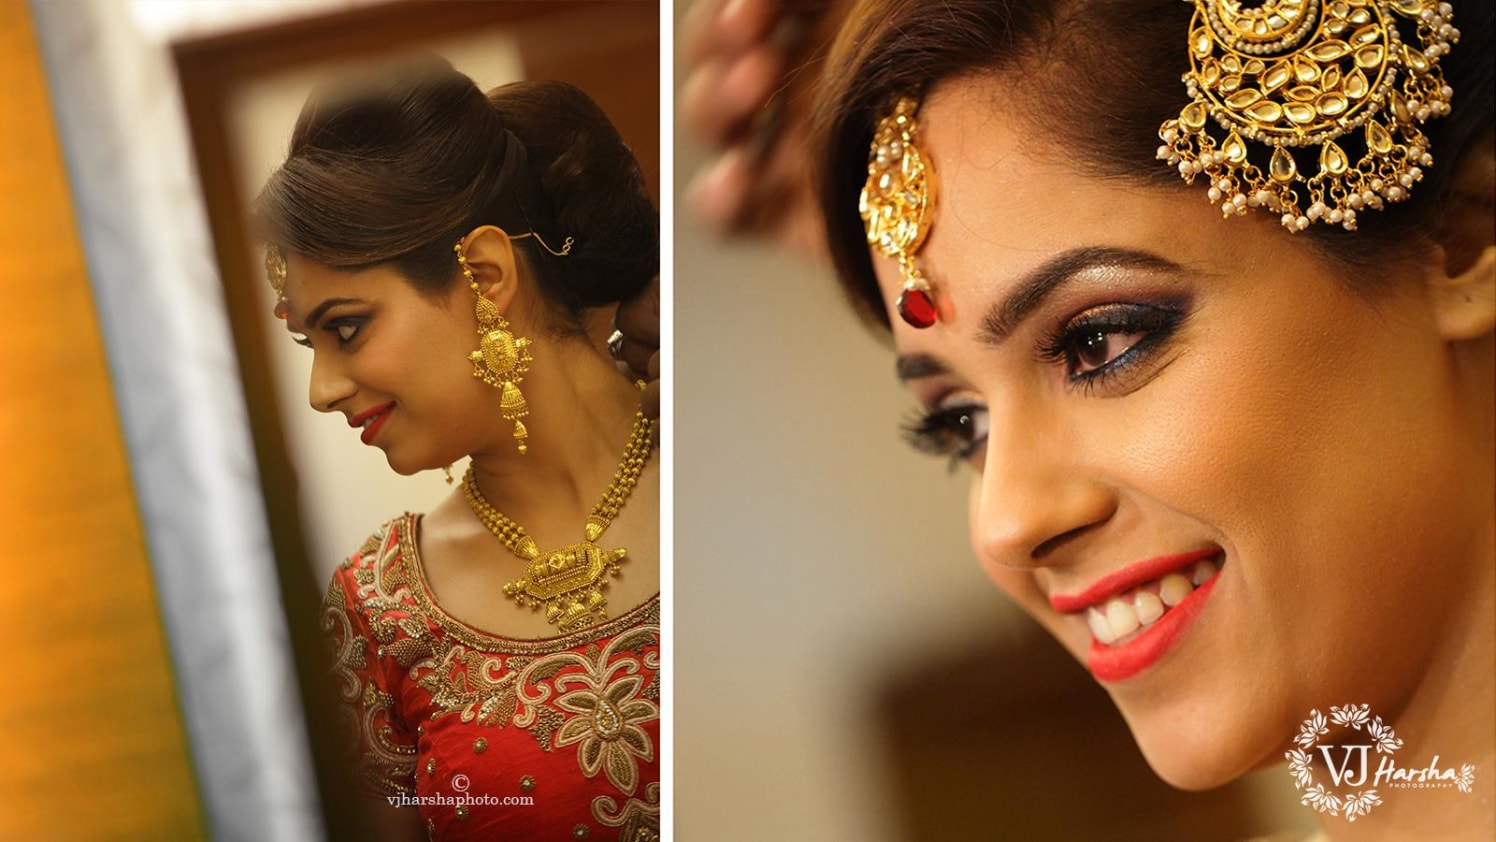 A Stunning Portrait of the Bride by Vjharsha Photography Wedding-photography Bridal-jewellery-and-accessories | Weddings Photos & Ideas